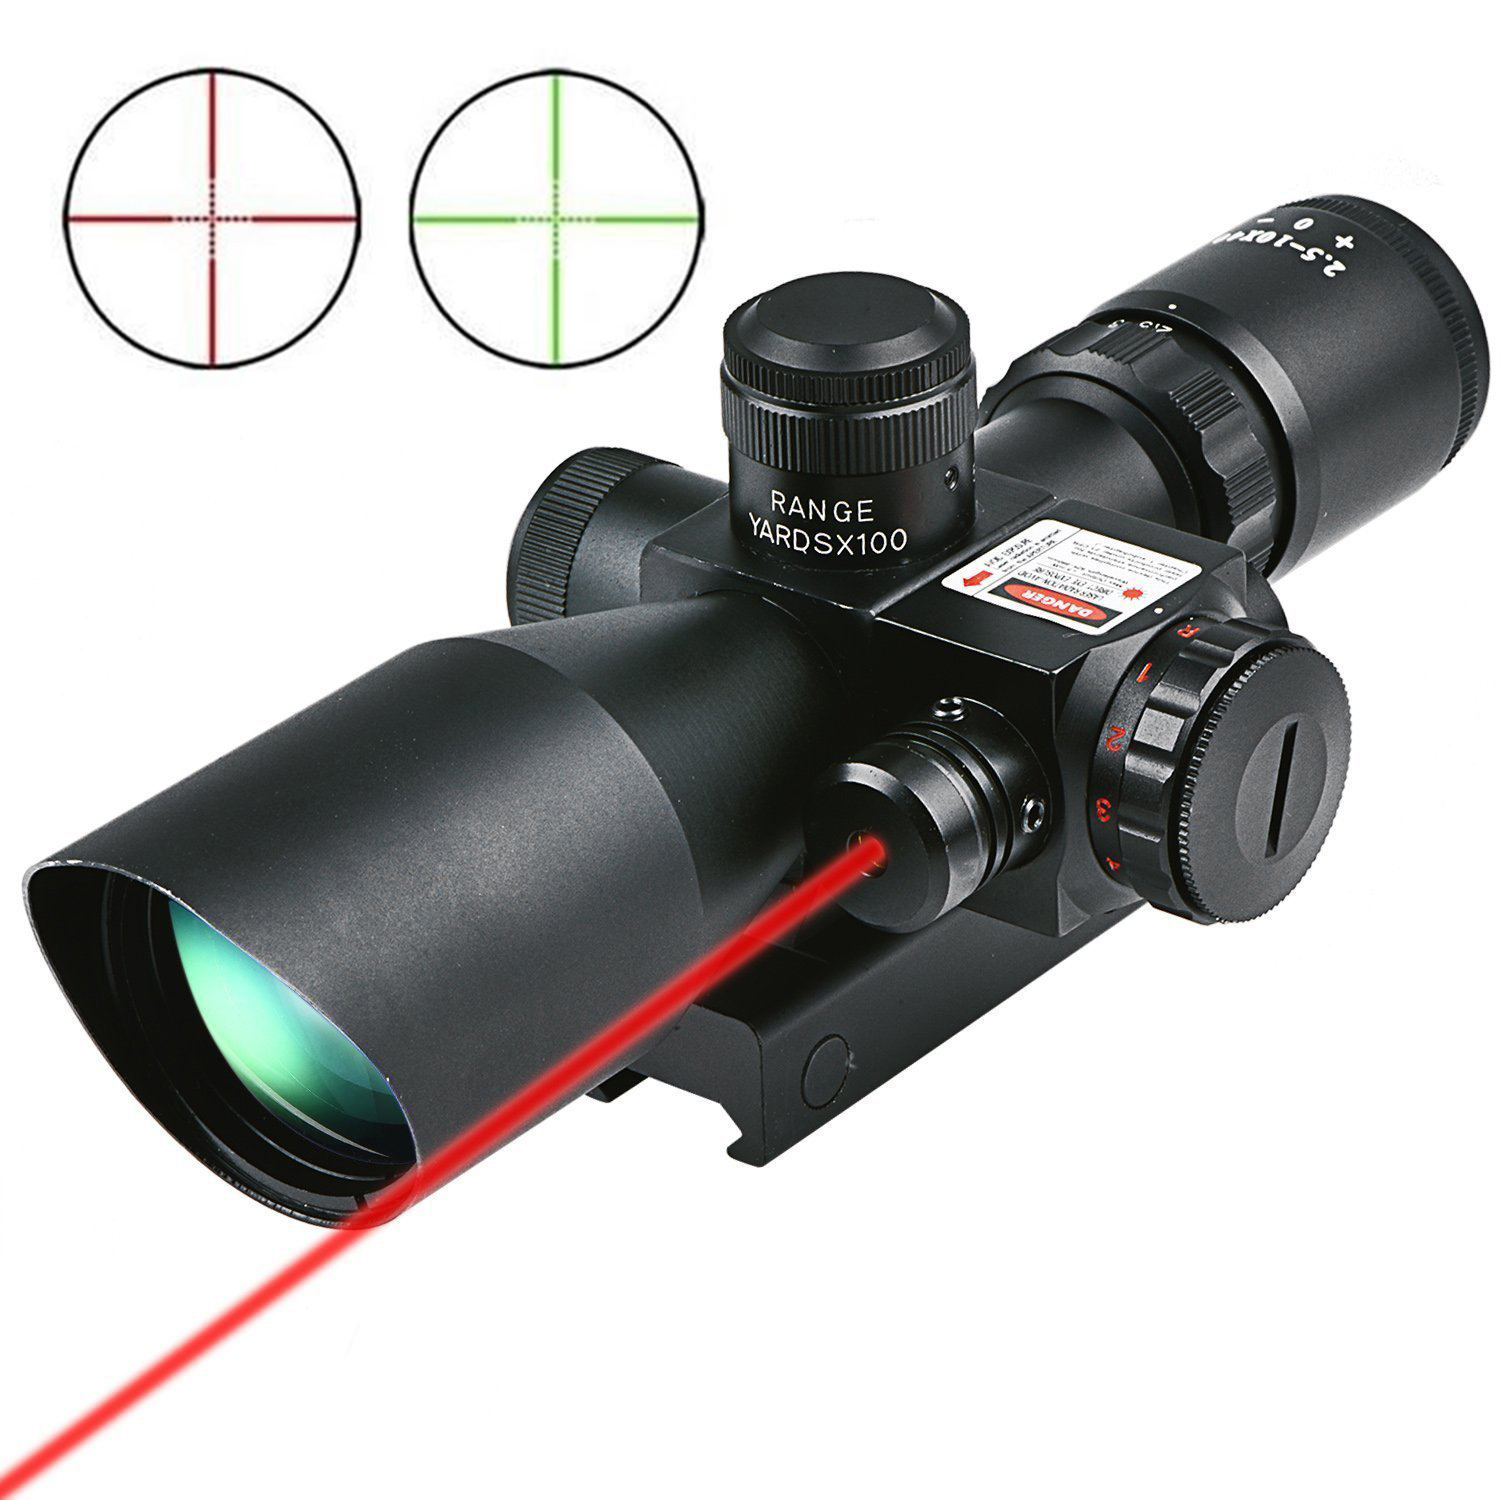 CVLIFE Hunting Rifle Scope 2.5-10x40 e Red Green Illuminated Mil-dot Gun RifleScopes Optics Sight Scope with 20mm & 11mm Mount стоимость